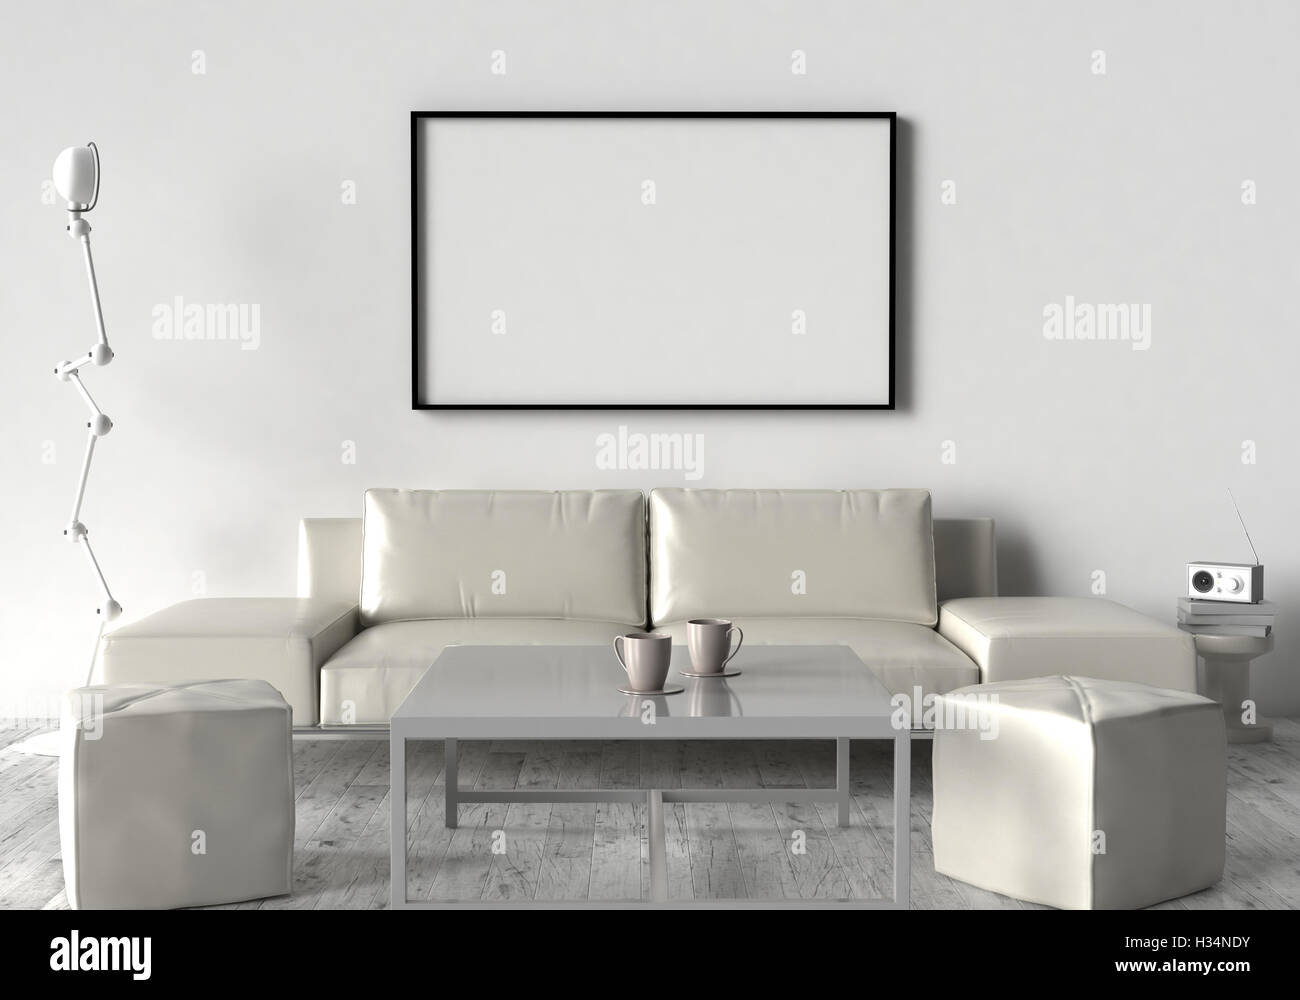 Living Room Sofa Two Stool And Table On The Wall Of An Empty Picture Frame 3D Illustration